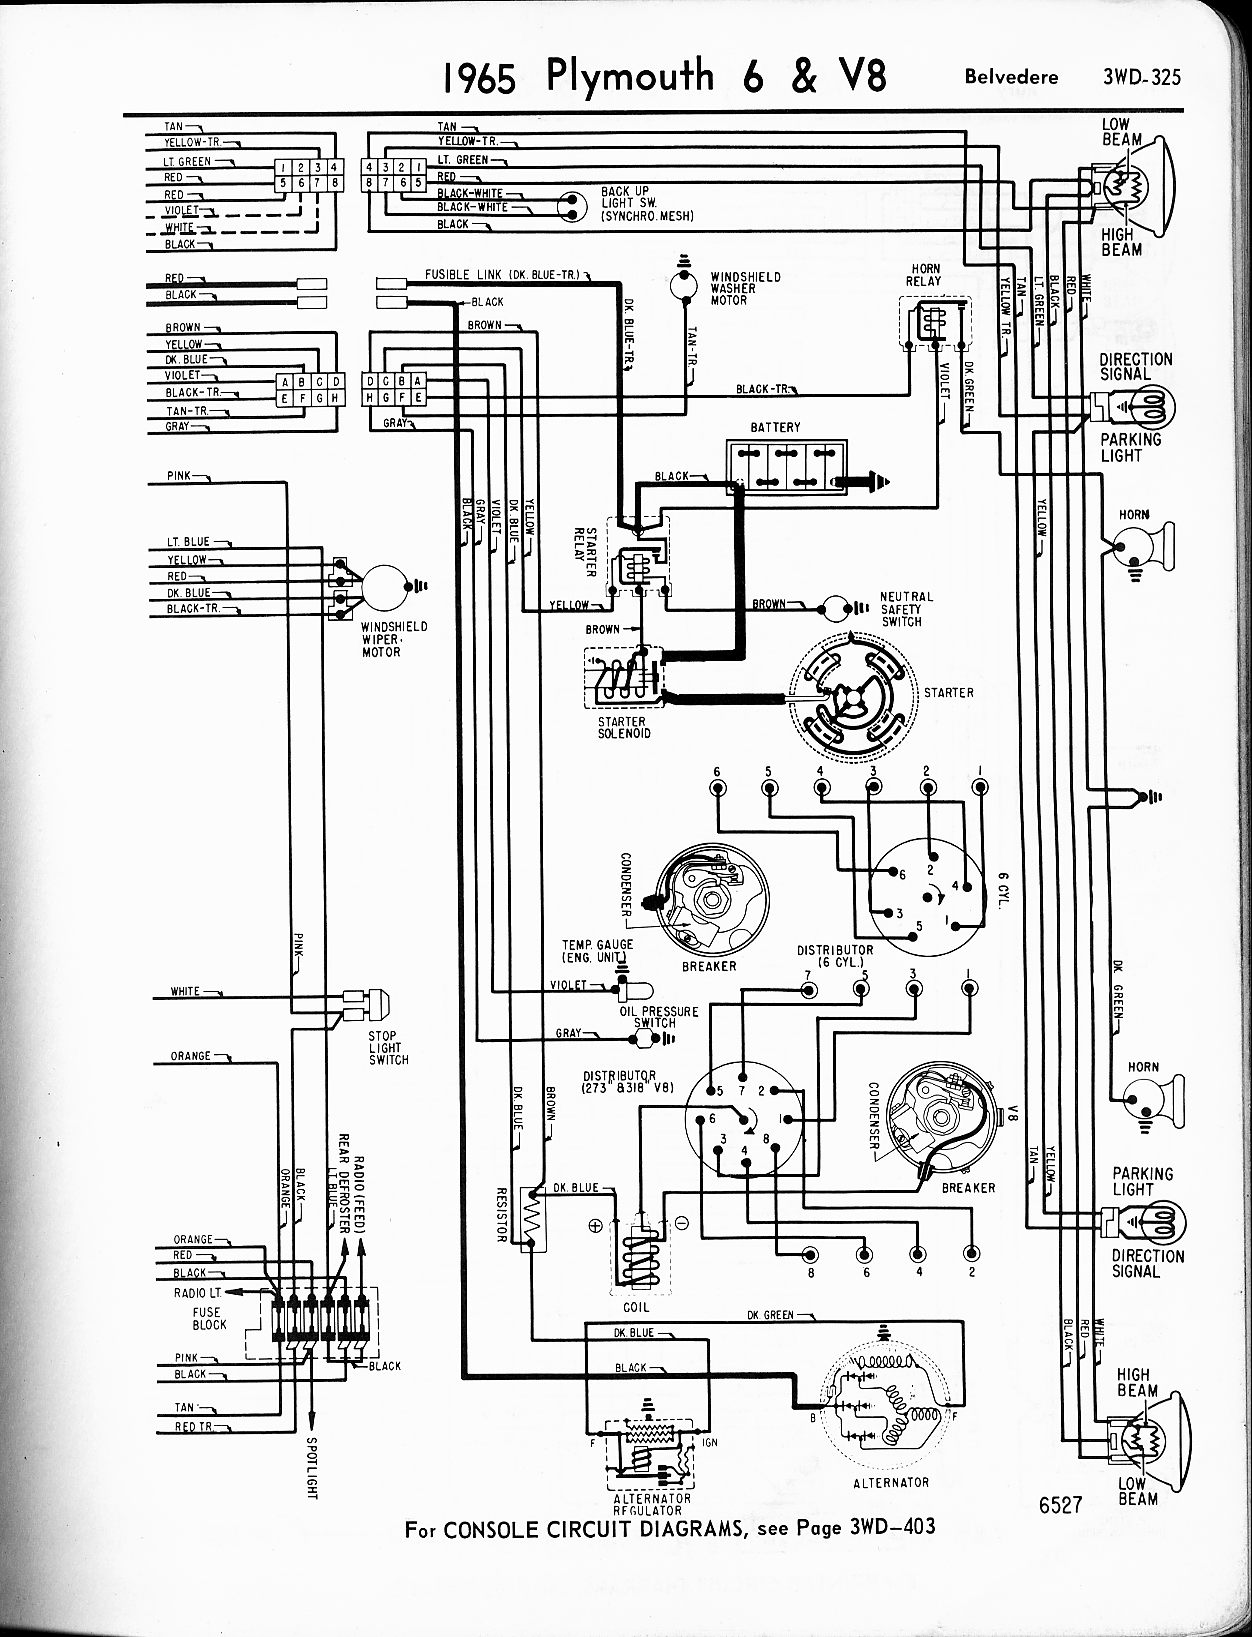 1965 plymouth satellite wiring diagram owner manual \u0026 wiring diagram1956 1965 plymouth wiring the old car manual project chevy 350 starter wiring diagram 1965 plymouth